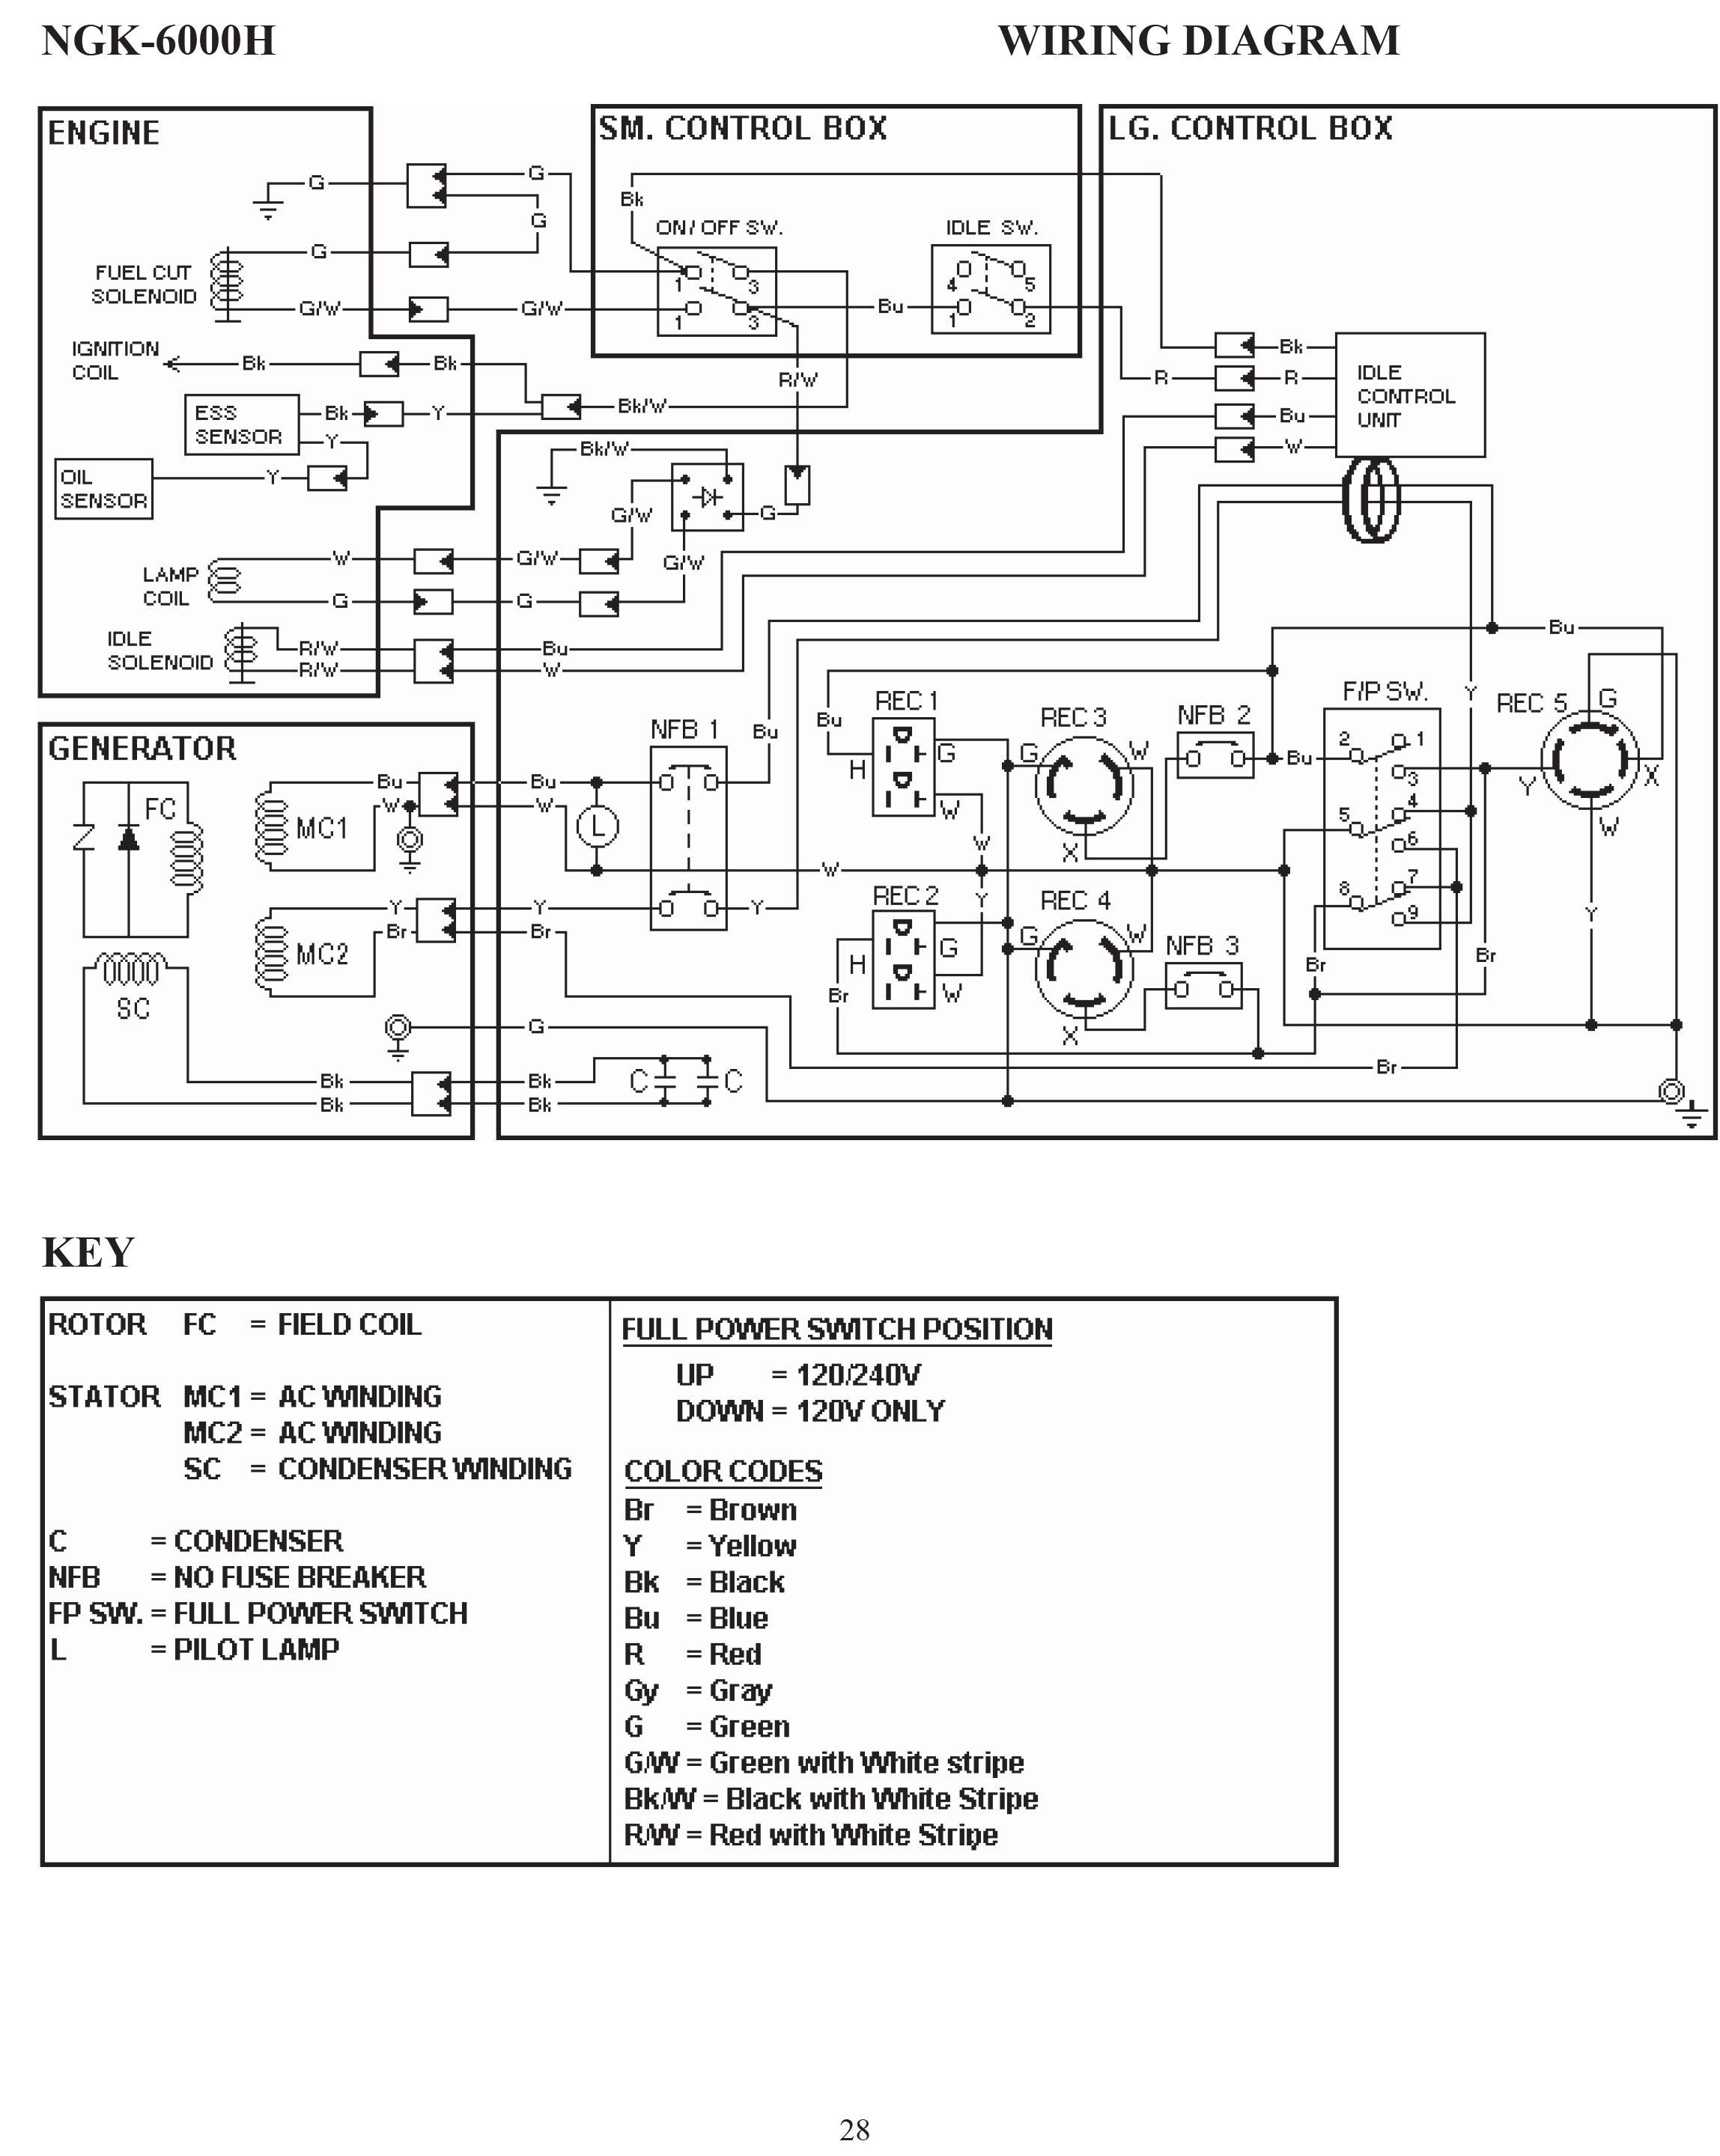 Mahindra Tractor 3 Point Diagram also Diesel Engine Injector Pump Timing together with q 23061674 also Massey Ferguson 65 Wiring Diagram besides Kubota L225 L225dt Parts Part Diagram Manual Set 130pg 586619549. on kubota wiring diagrams